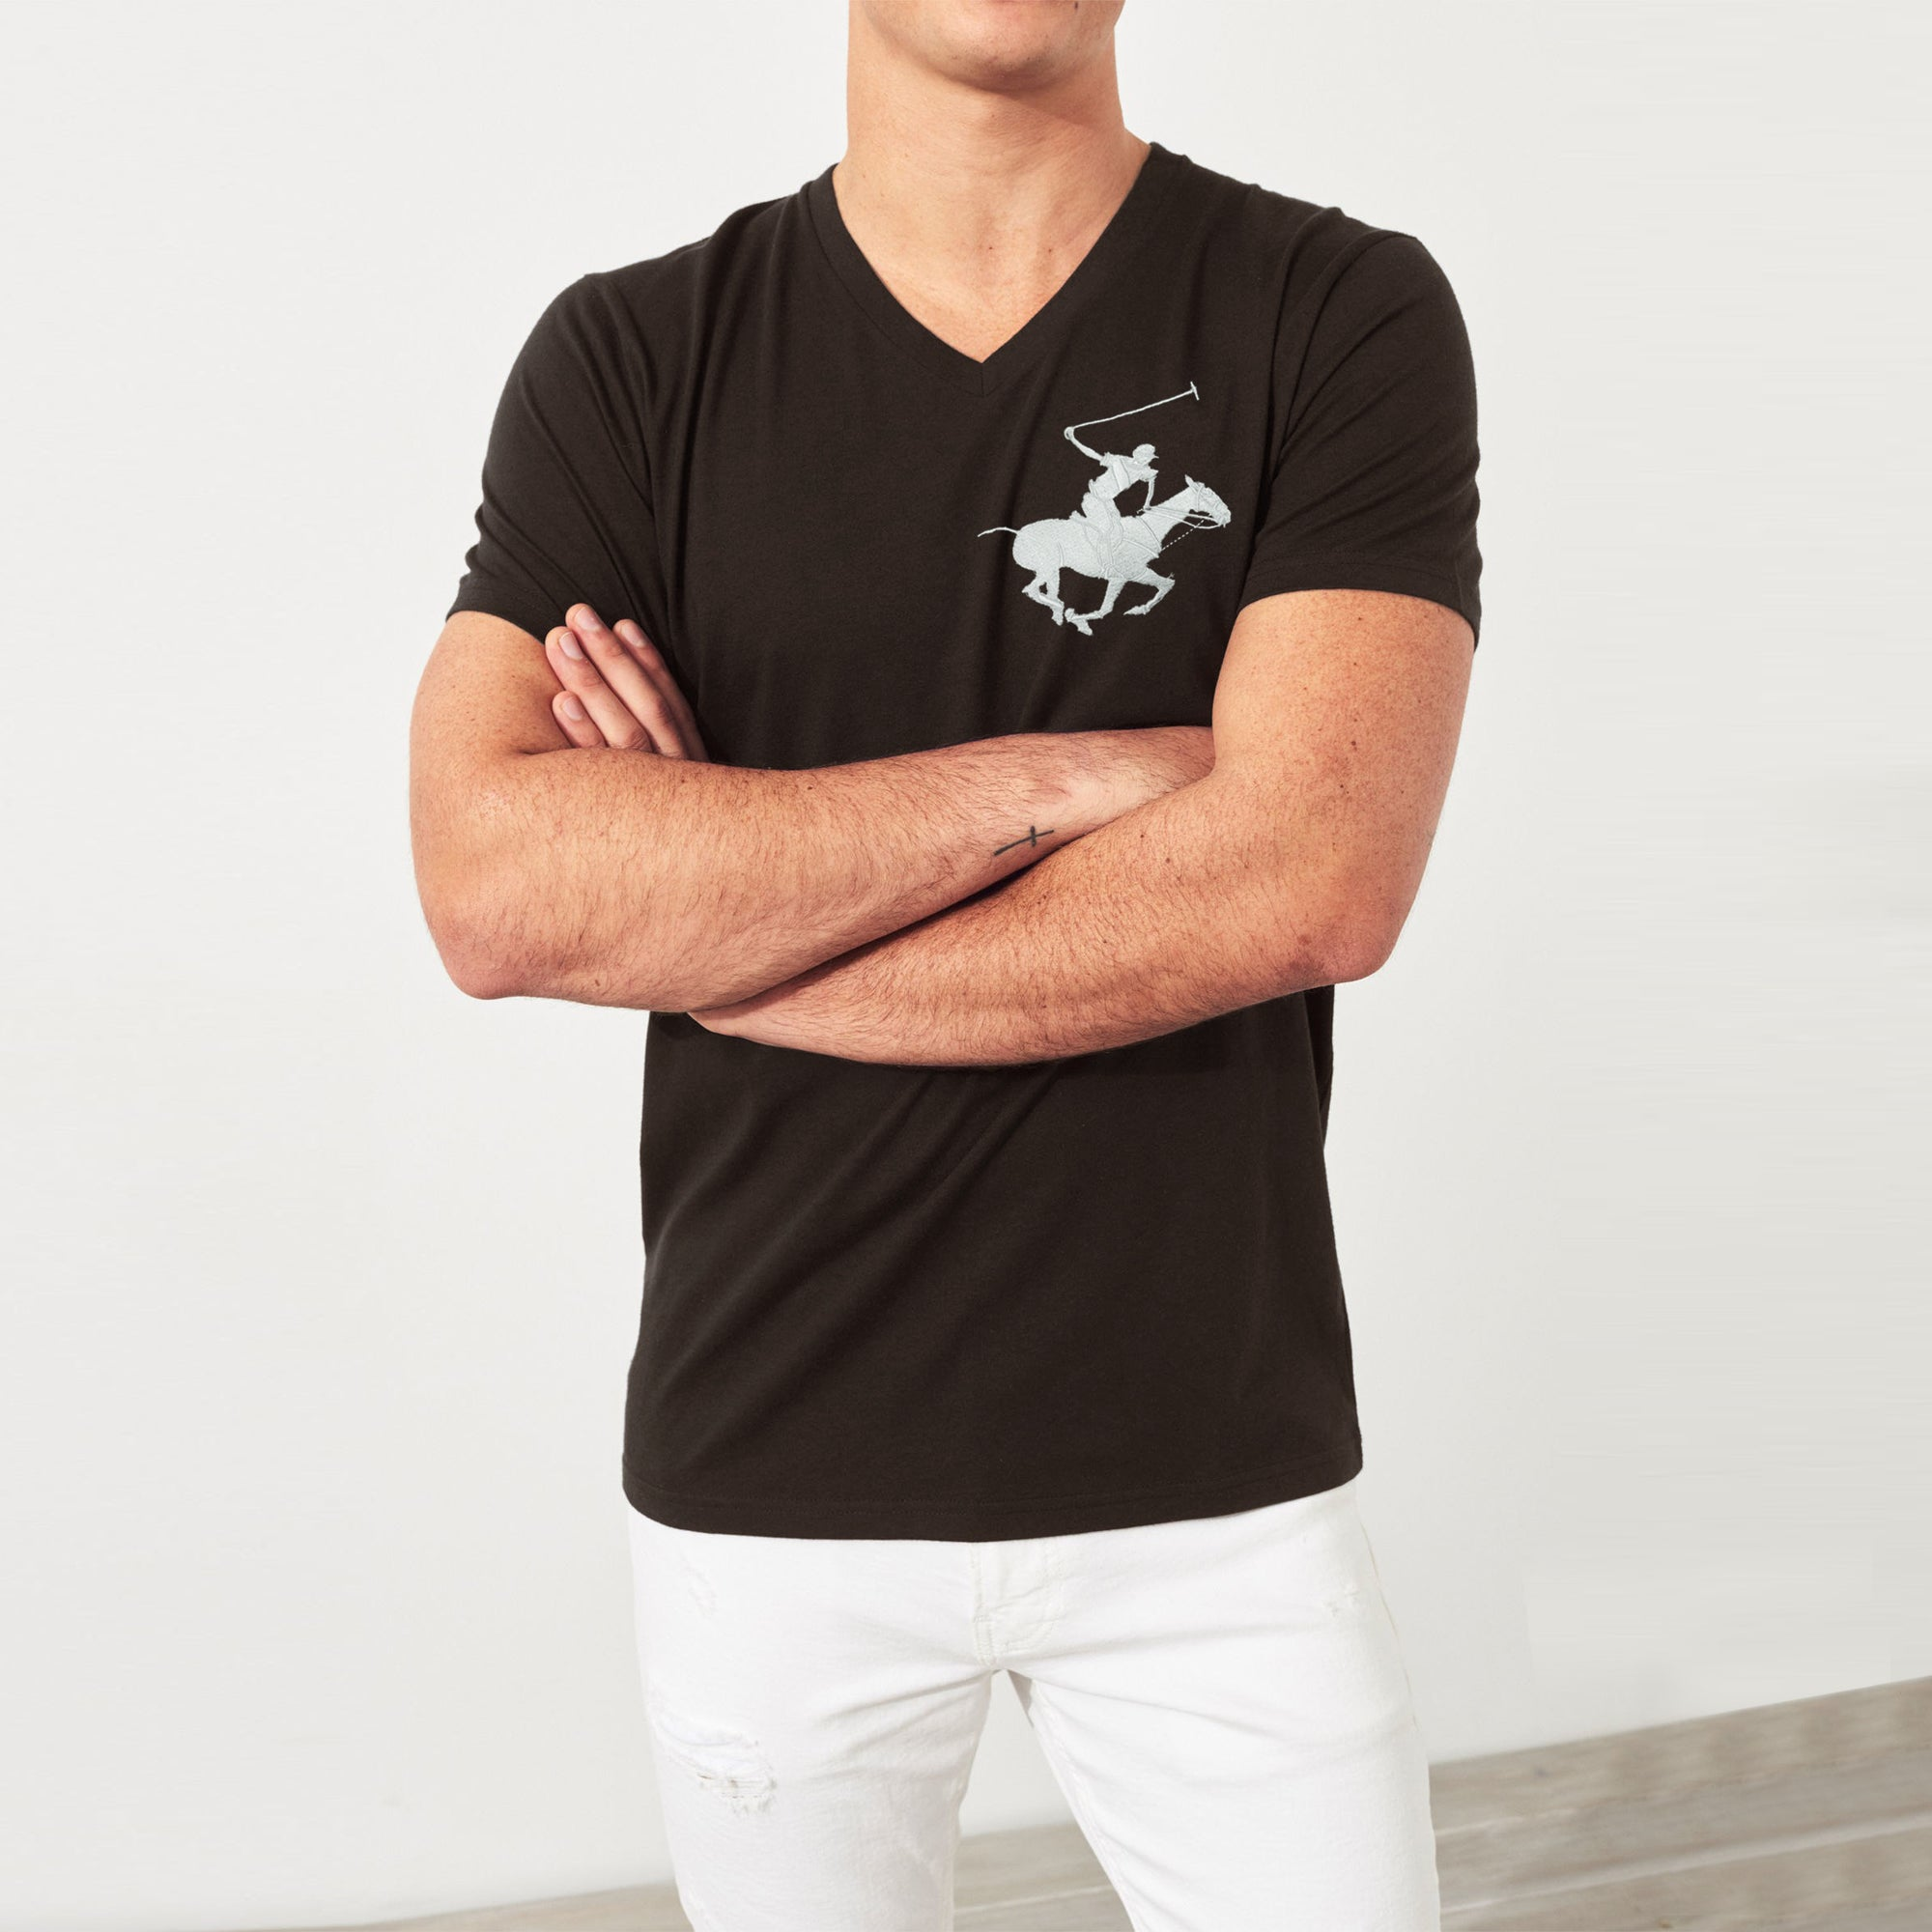 Beverly Hills V Neck Half Sleeve Tee Shirt For Men-Chocolate-BE8188